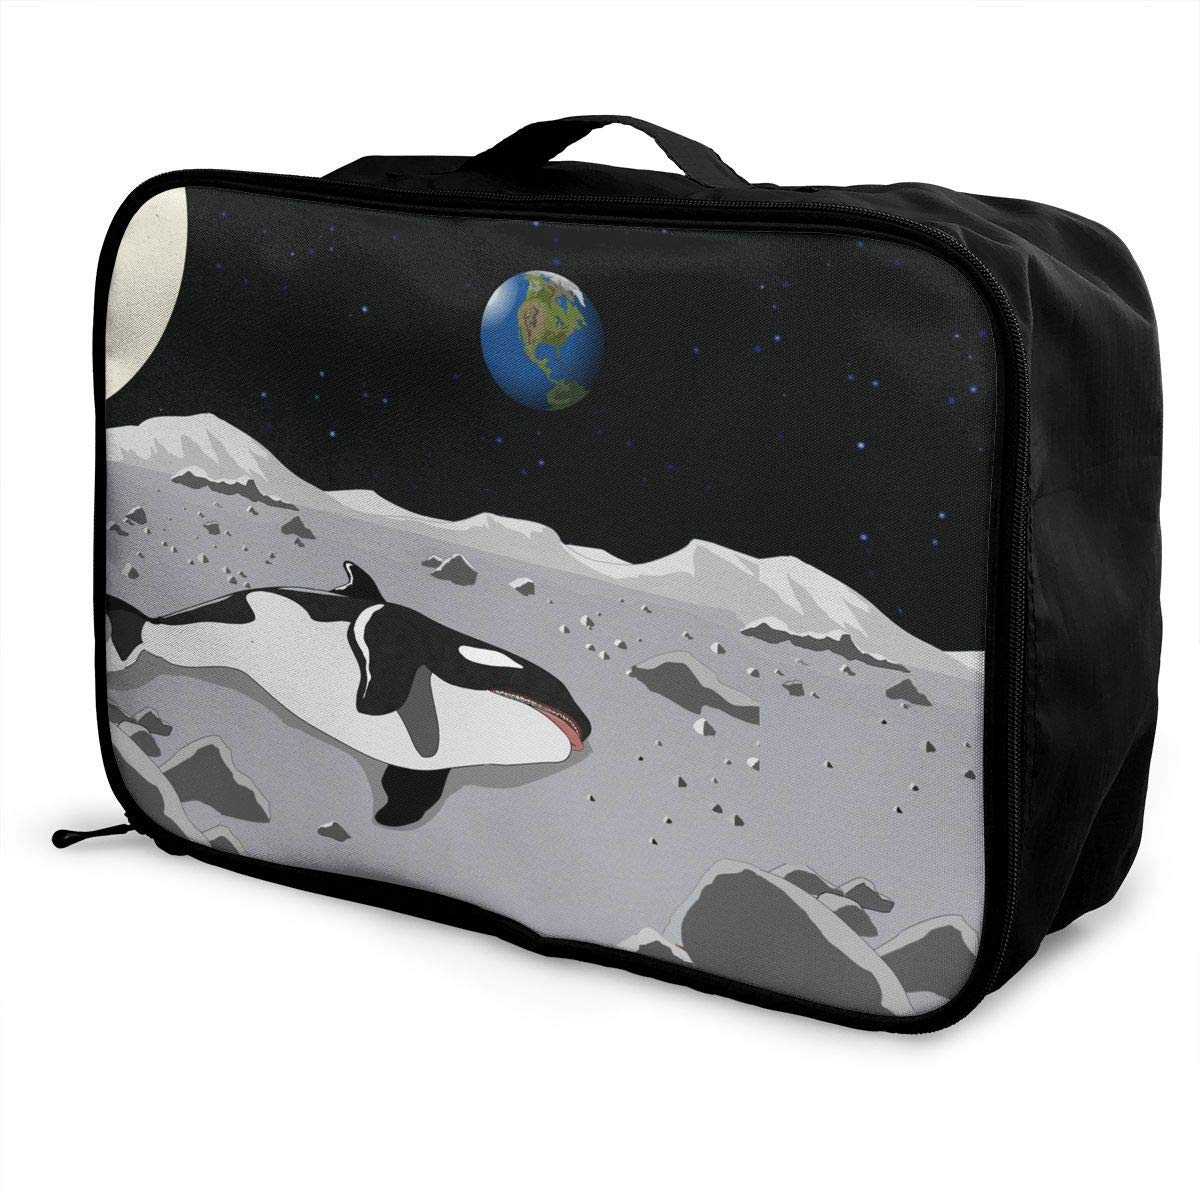 JTRVW Luggage Bags for Travel Lightweight Large Capacity Portable Duffel Bag for Men /& Women Whale Dying Travel Duffel Bag Backpack